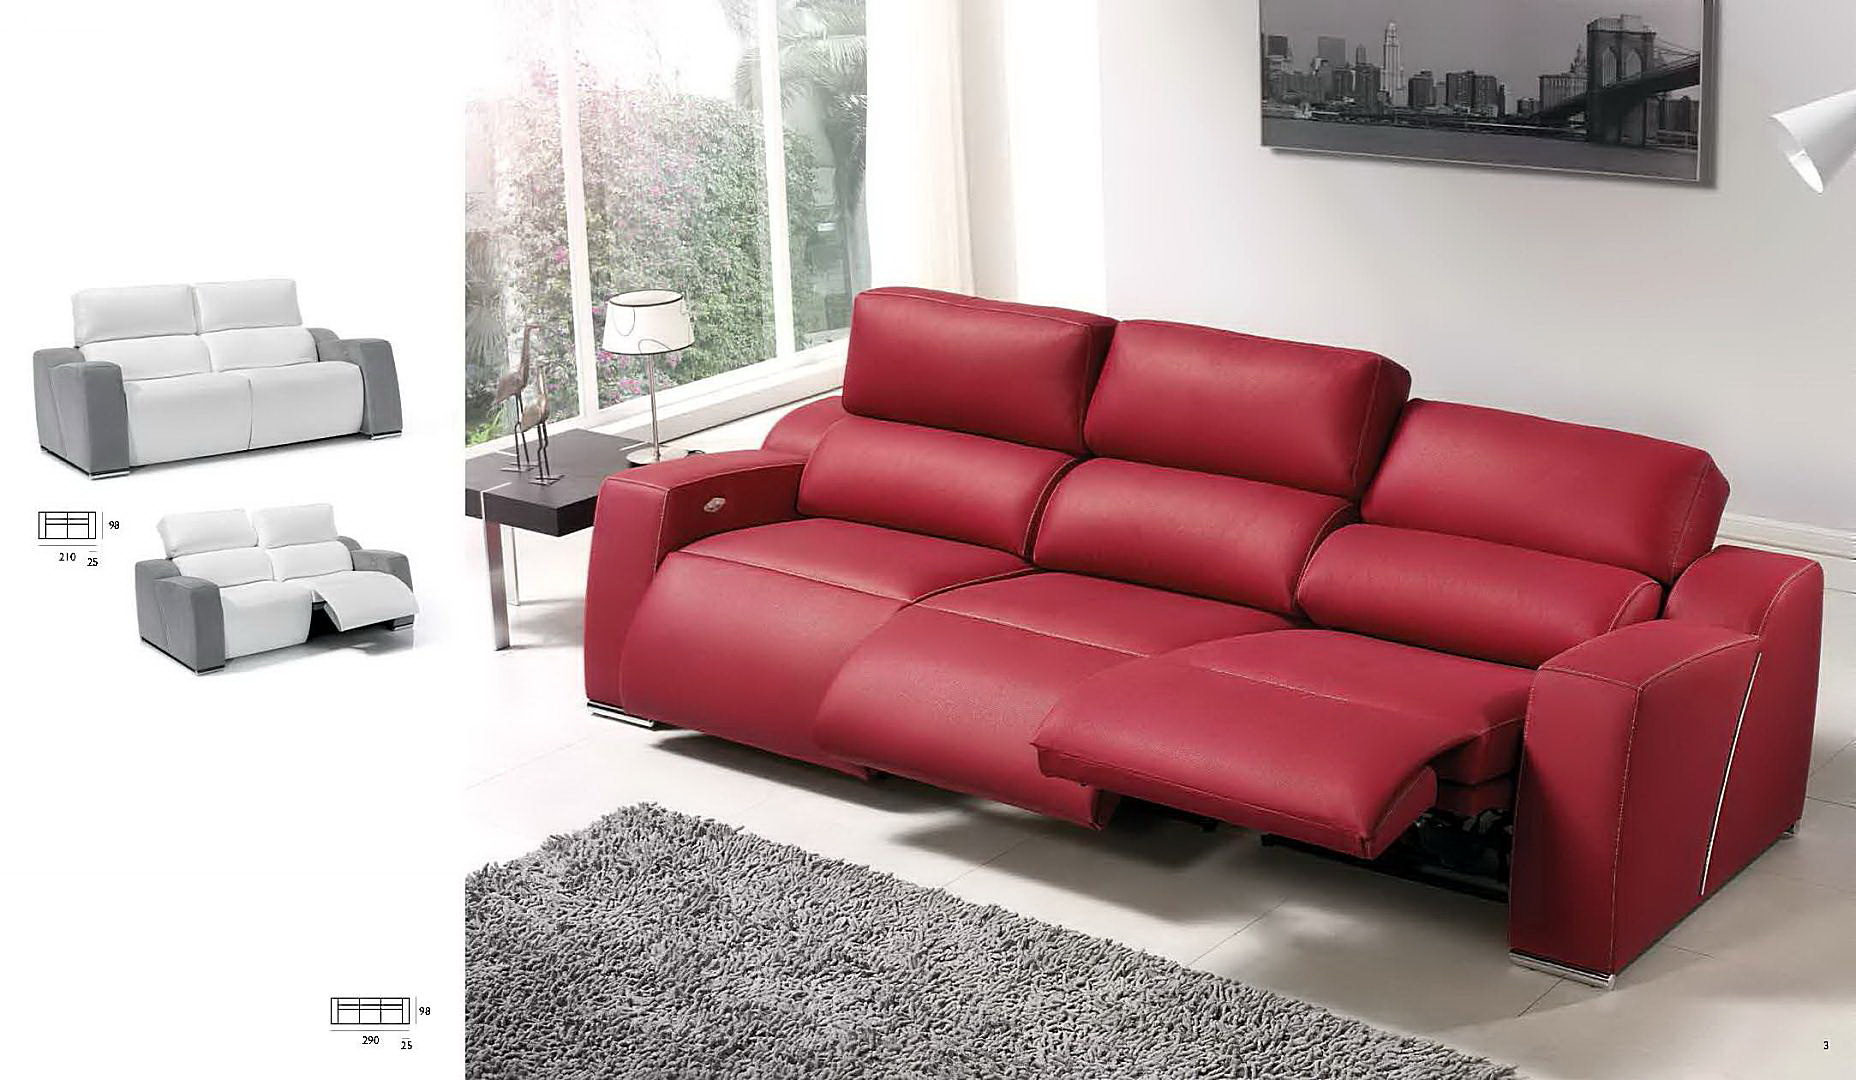 Sillones Relax By Requena Muebles Anto N # Muebles Requena Requena